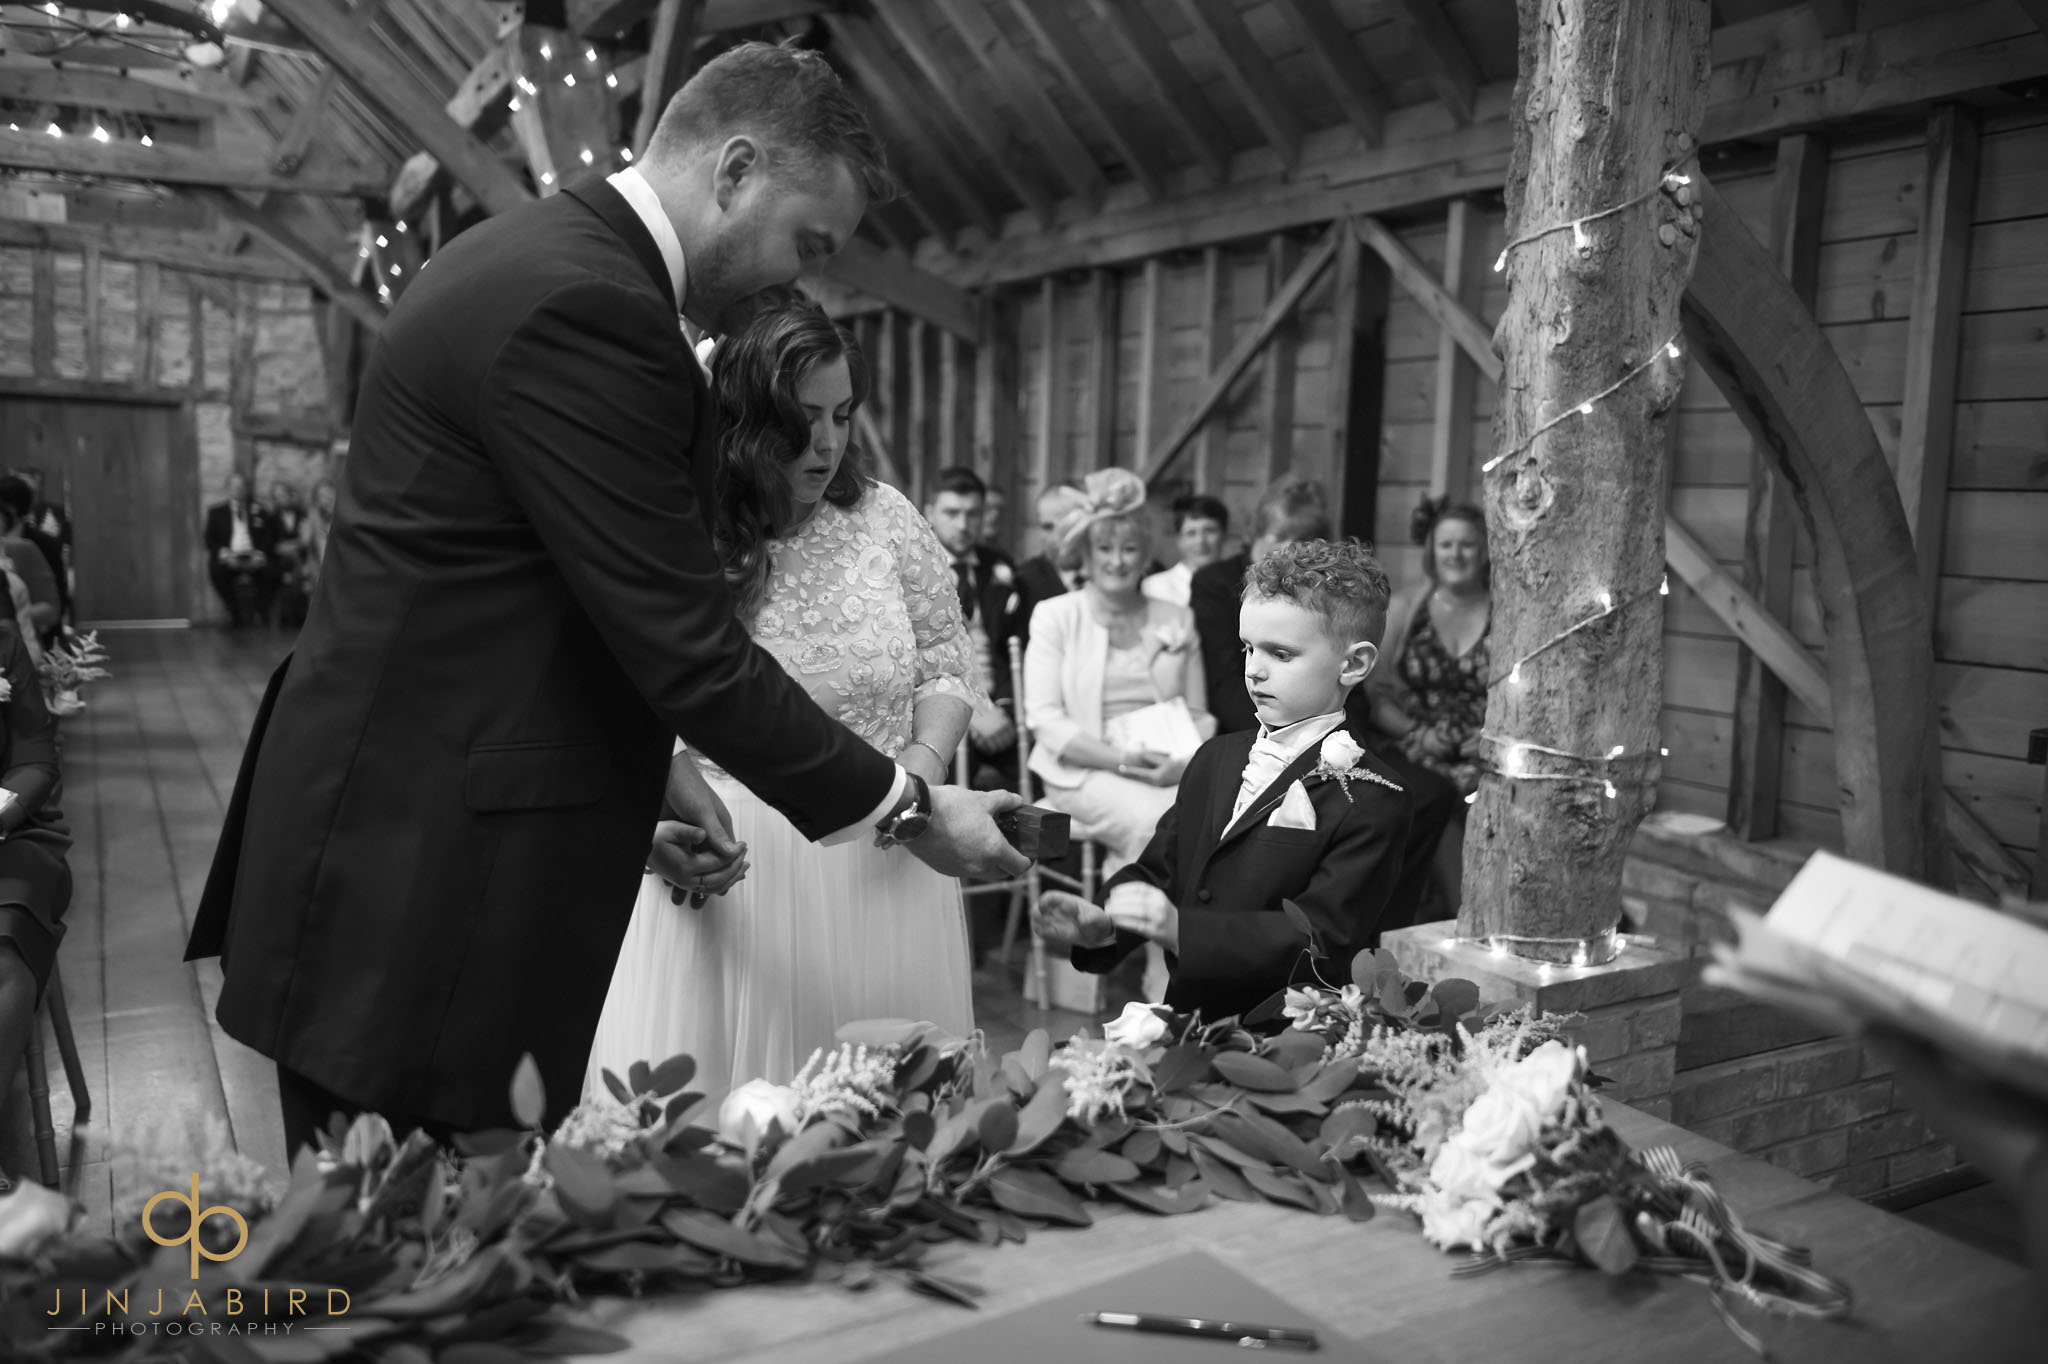 pageboy giving rings to groom